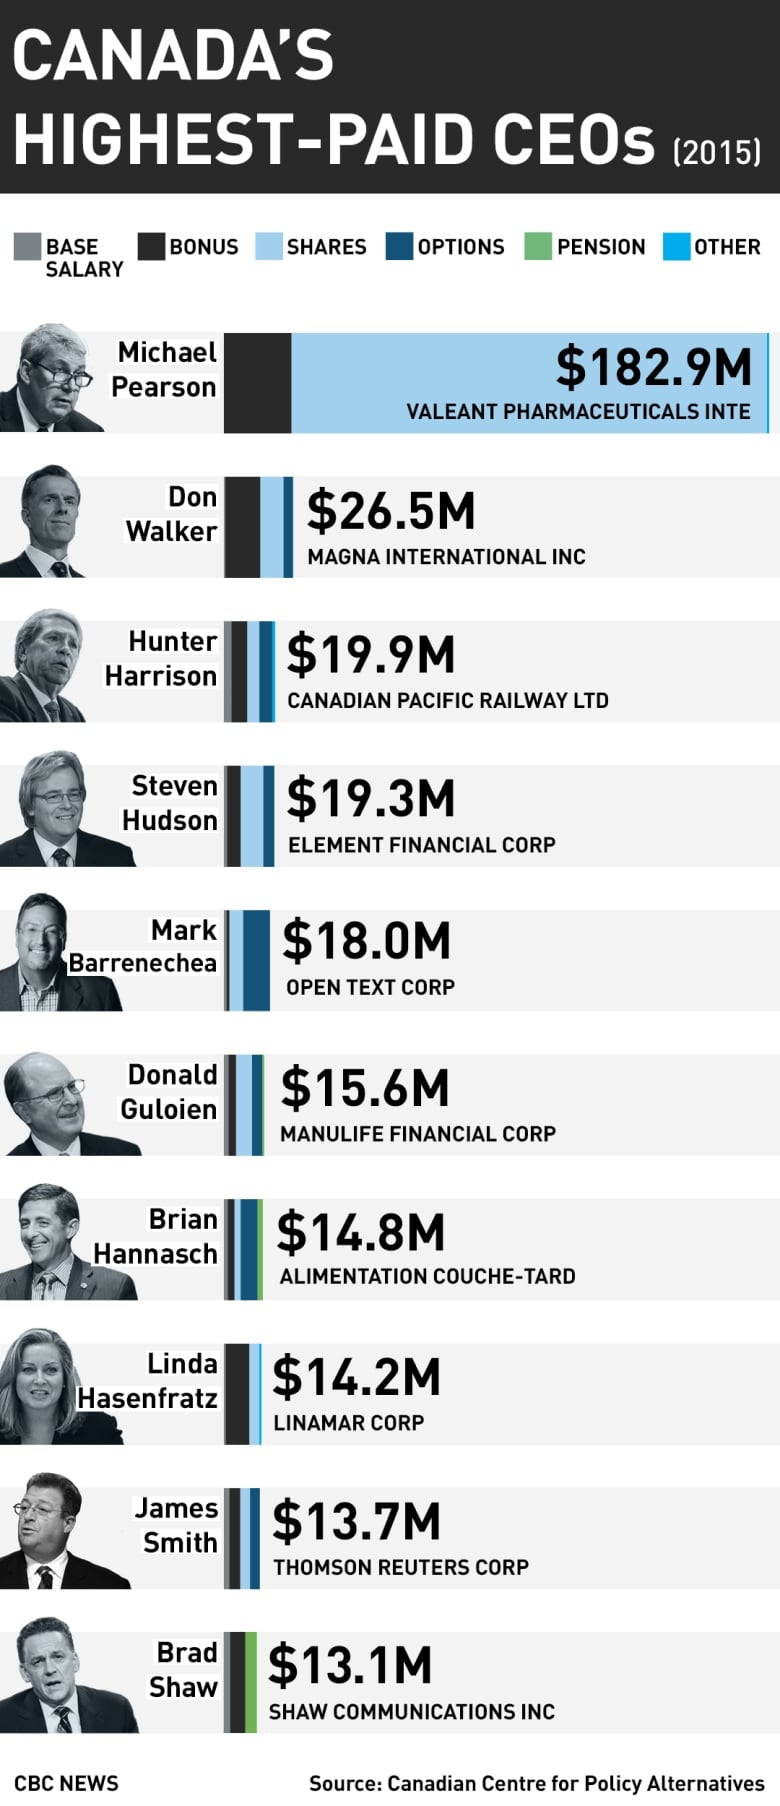 Canada's top CEOs earn 193 times average worker's salary | CBC News